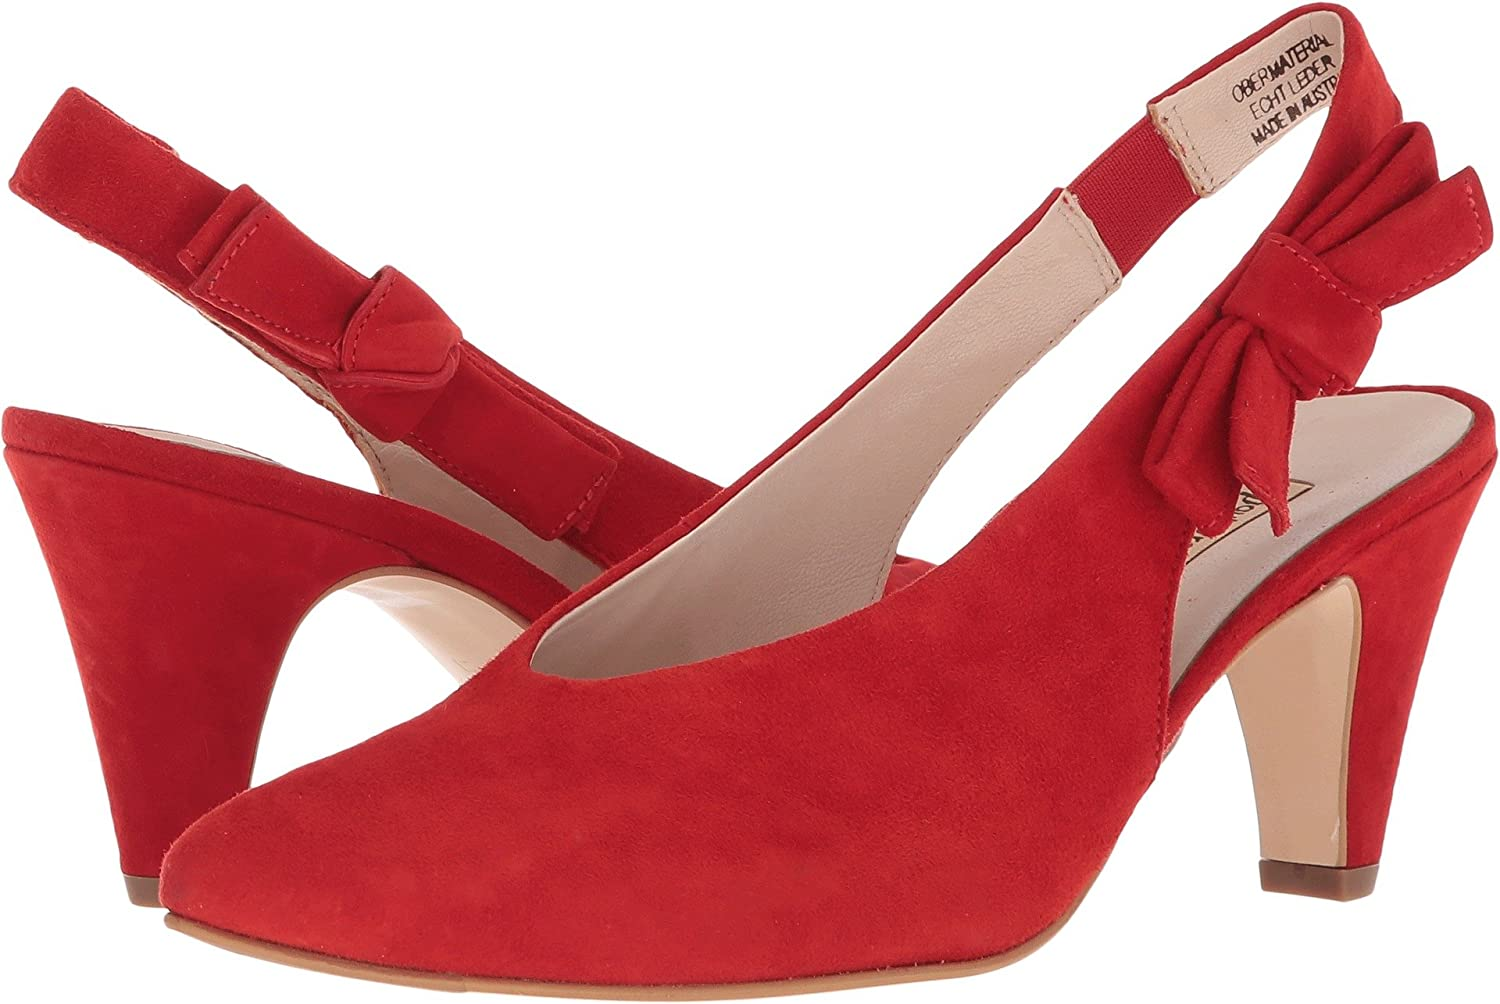 Paul Green Womens Regina B075RF6FQ3 9.5 B(M) US|Red Suede